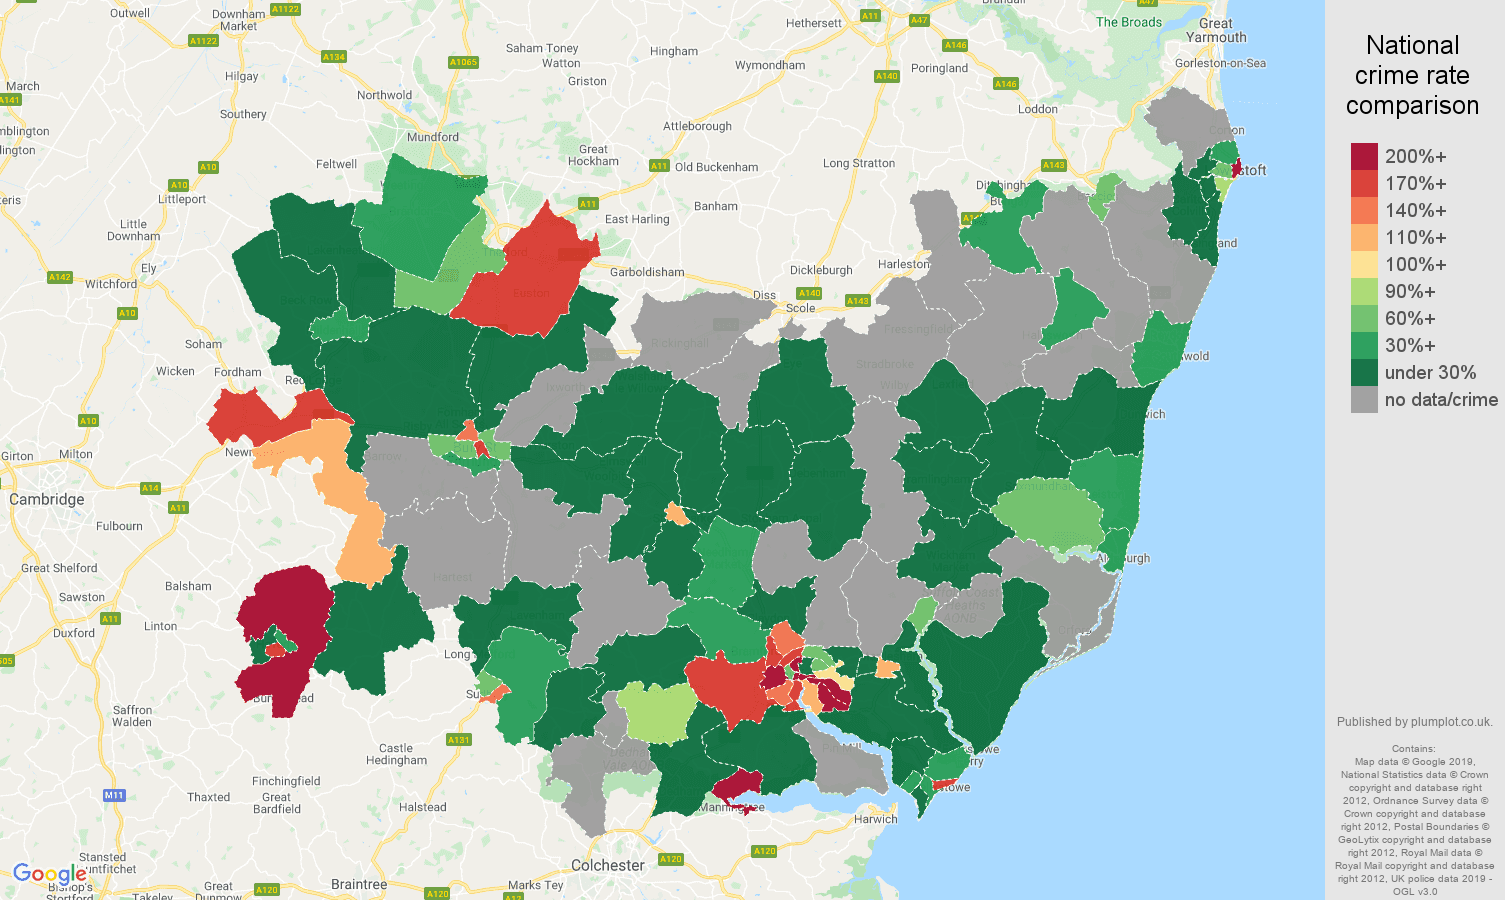 Suffolk shoplifting crime rate comparison map